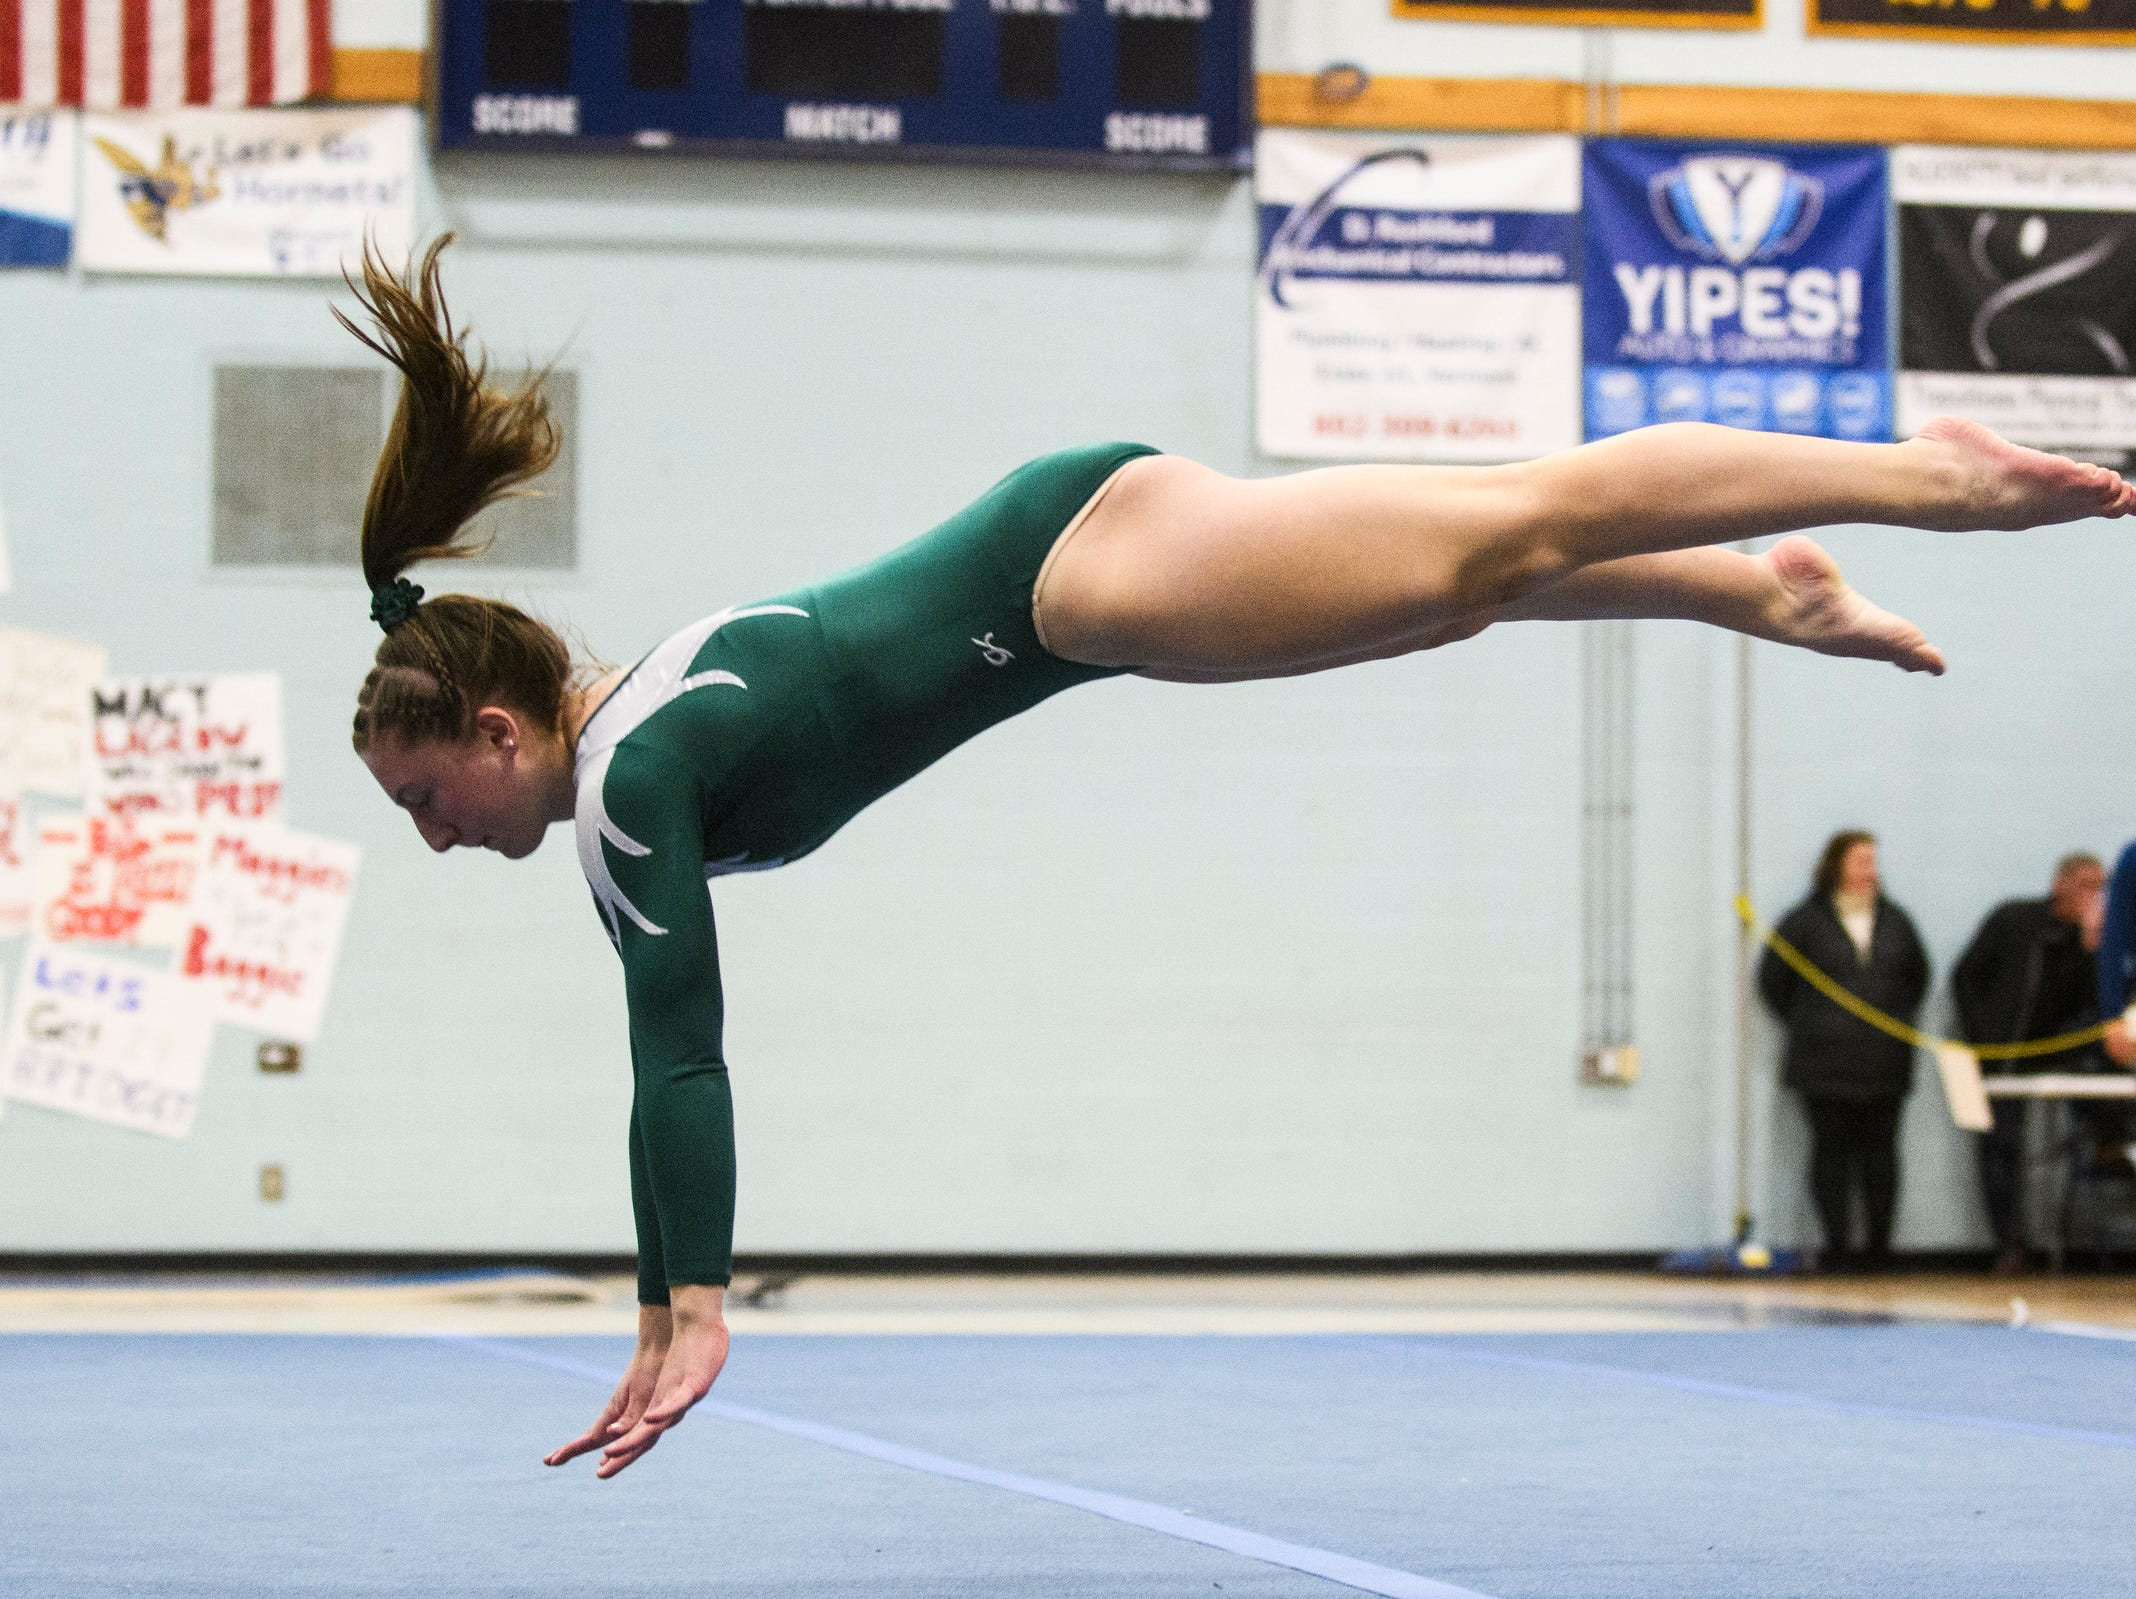 St. Johnsbury's Anna Cushing comets in the floor routine during the 2019 high school gymnastics championship at Essex High School on Saturday afternoon February 16, 2019 in Essex, Vermont.